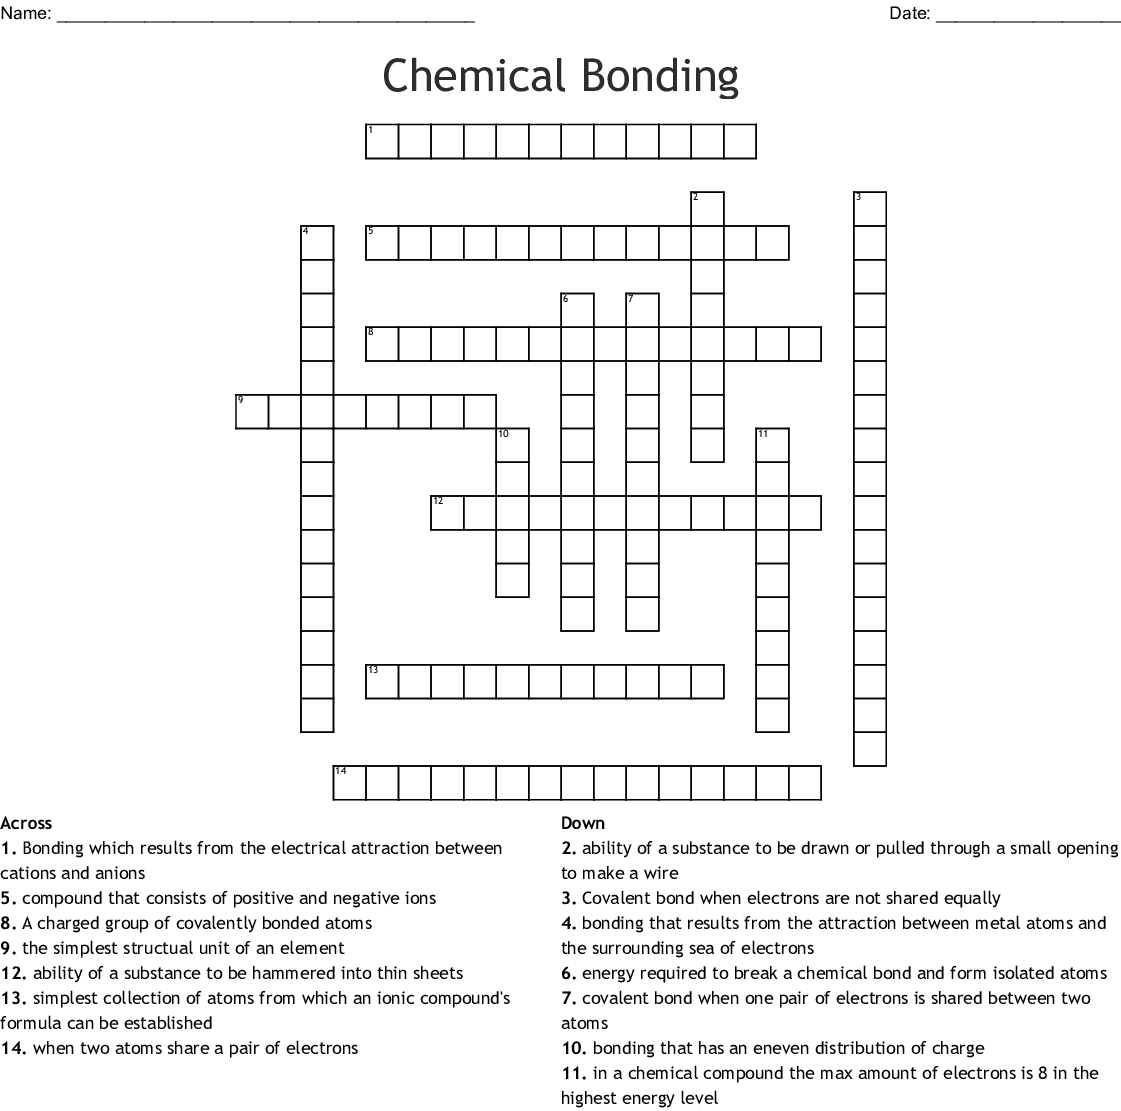 Chemical Bonding Crossword Word